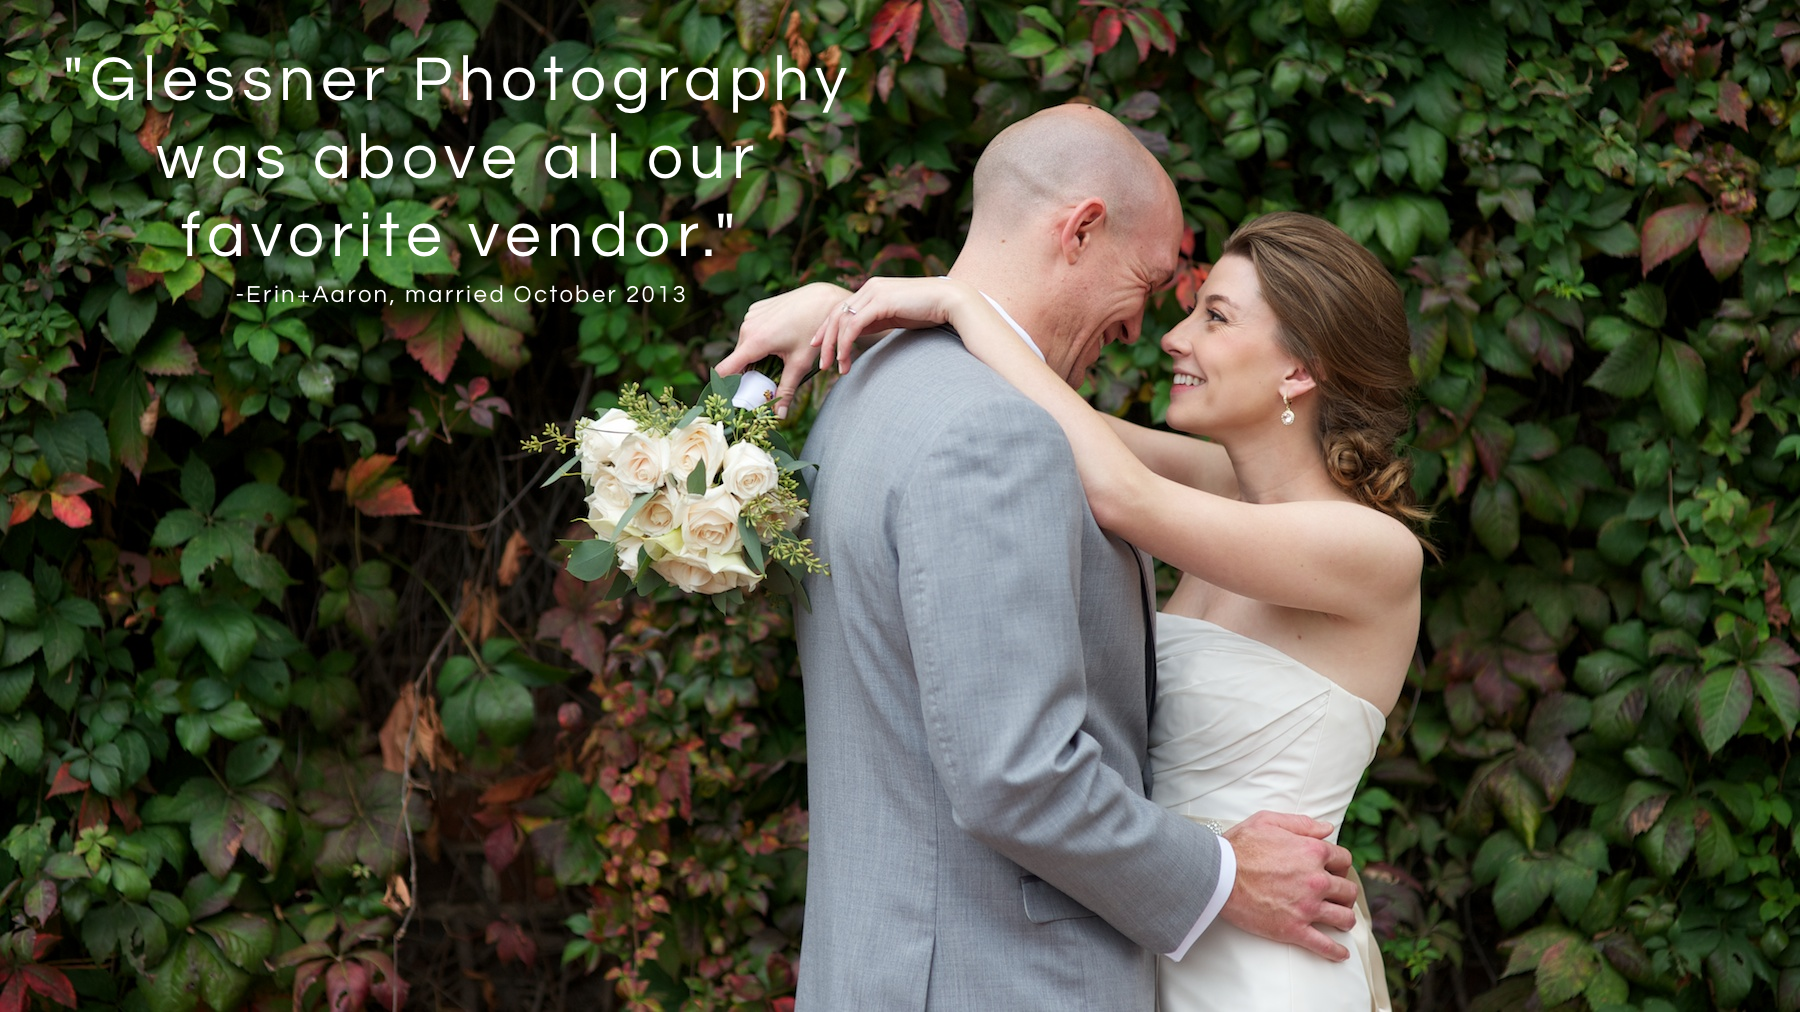 "Erin Johnson and Aaron Afarian's Winston-Salem, NC wedding was held at Old Salem Museum and Gardens. The bride and groom say of their Winston-Salem wedding photographers, ""Glessner Photography was above all our favorite vendor."""